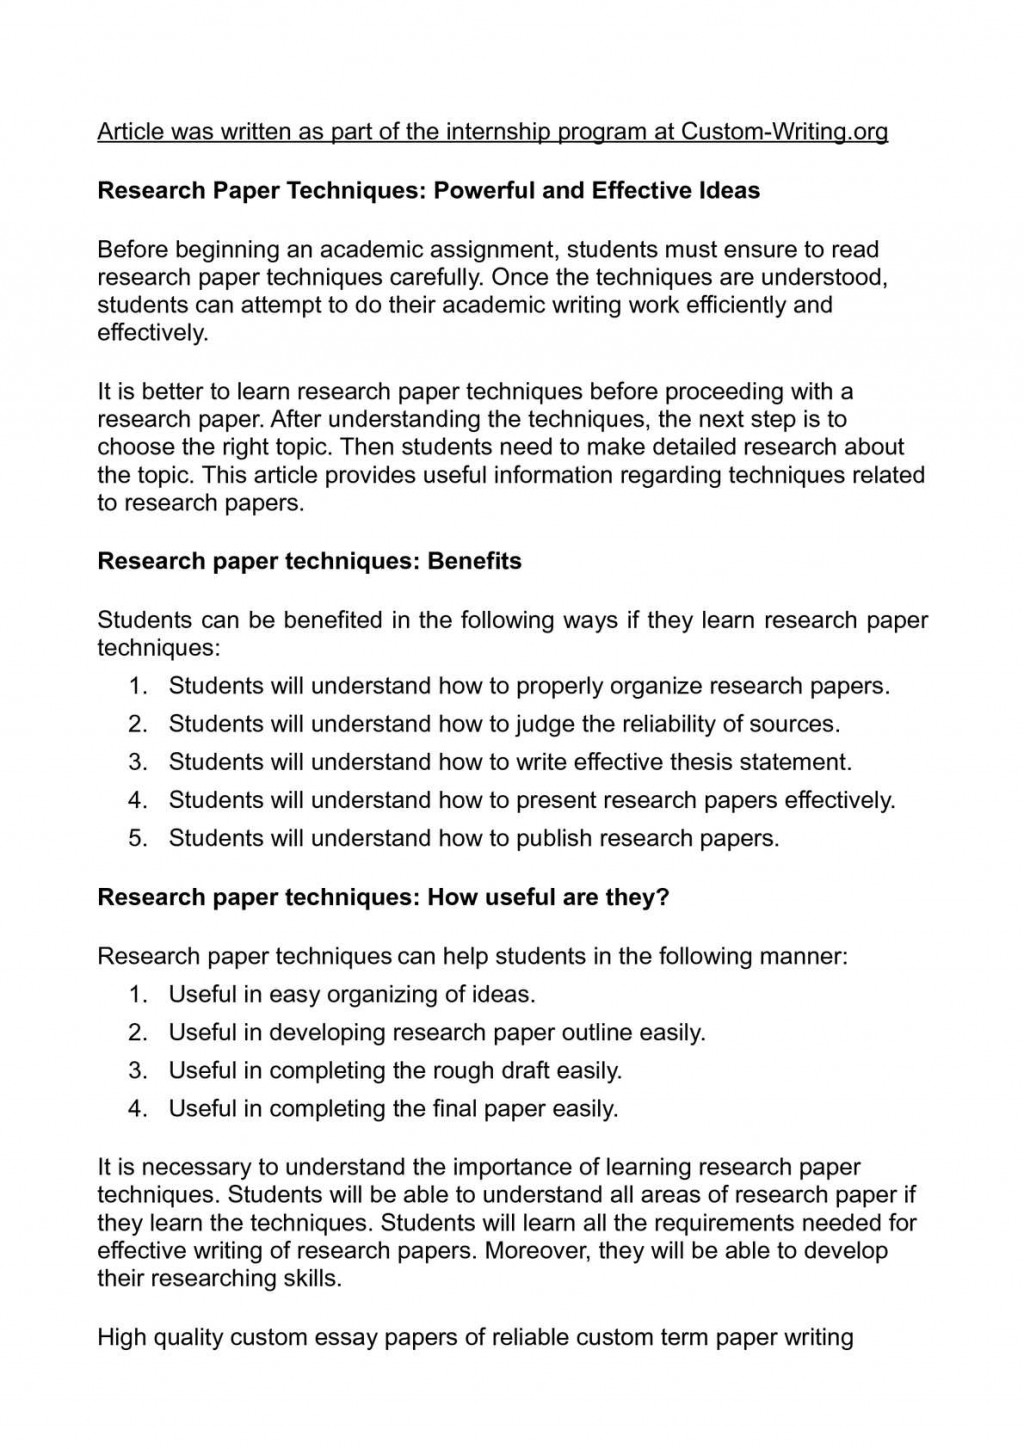 003 Ideas For Research Paper Fascinating Papers In Economics High School College Large